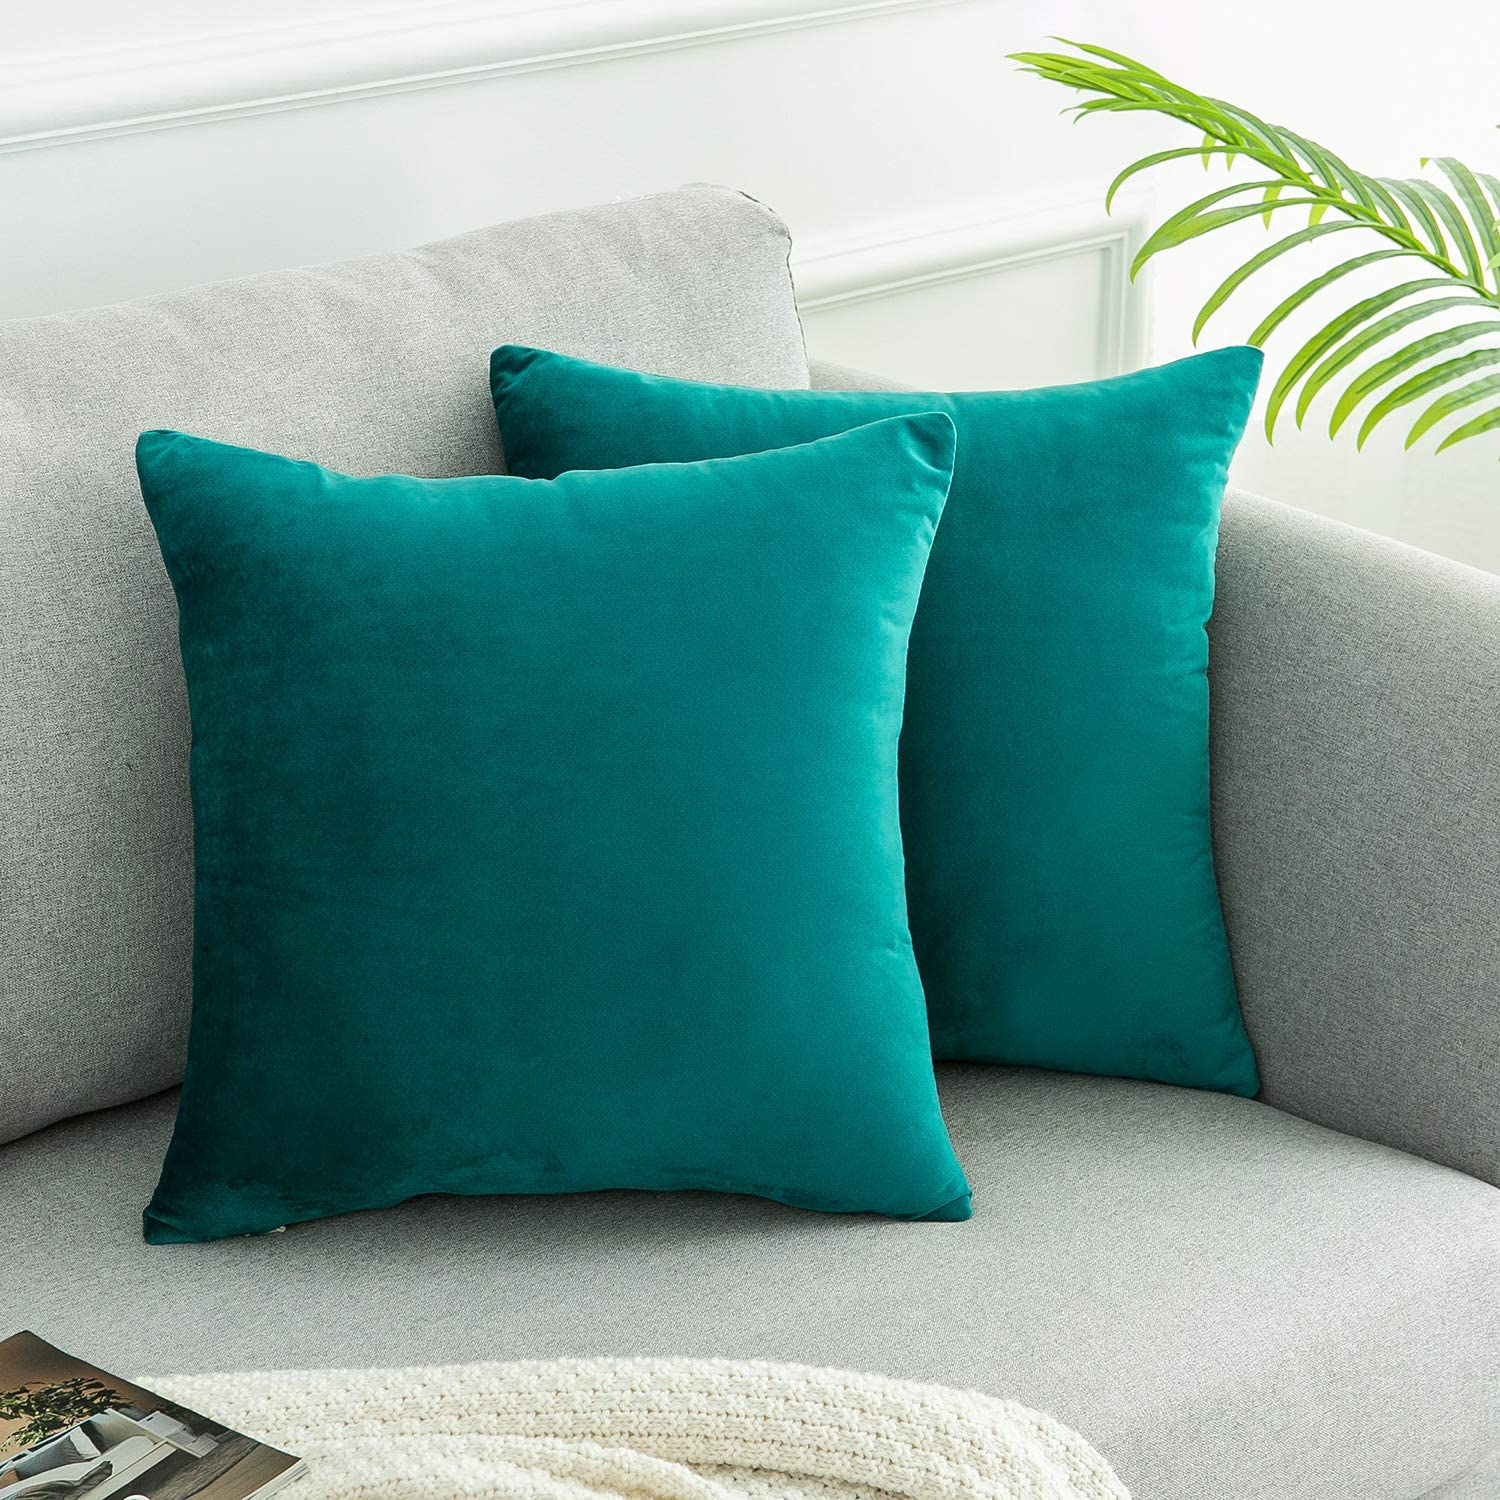 WLNUI Set of 2 Soft Velvet Teal Blue Pillow Covers 18x18 Inch Square Decorative Throw Pillow Covers Cushion Case for Sofa Couch Home Farmhouse Decor